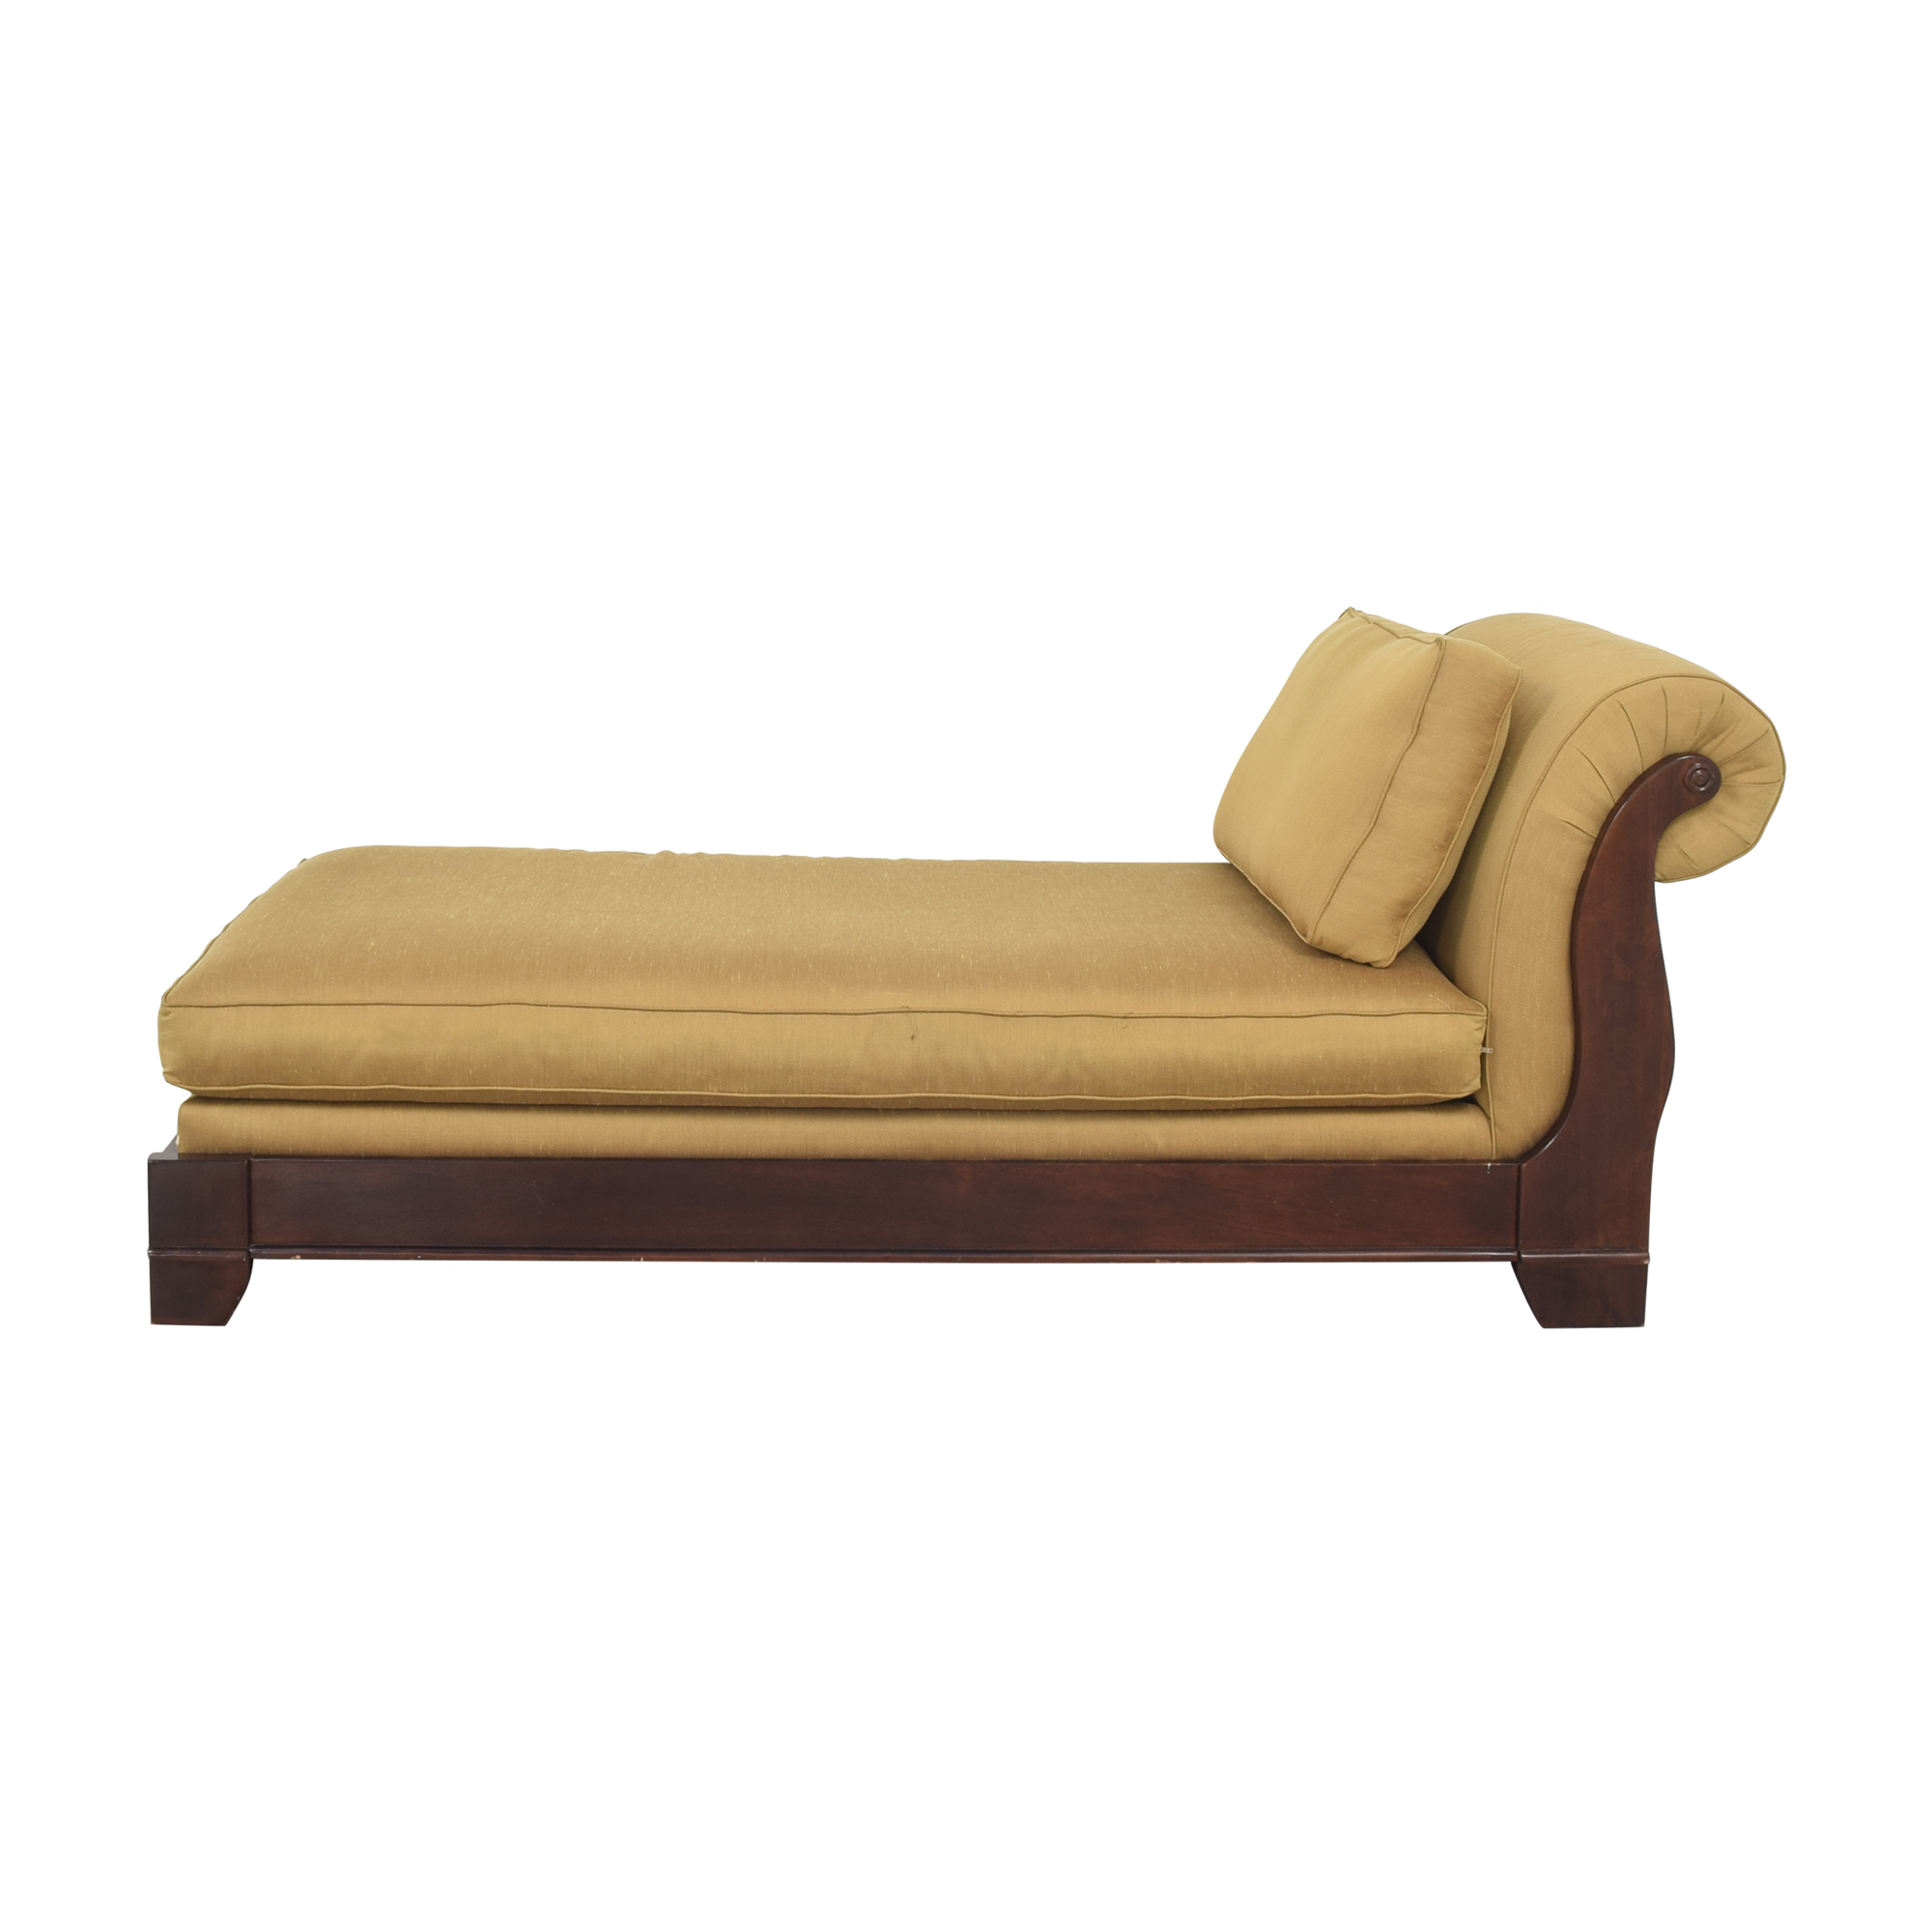 Bassett Upholstered Chaise Lounge sale